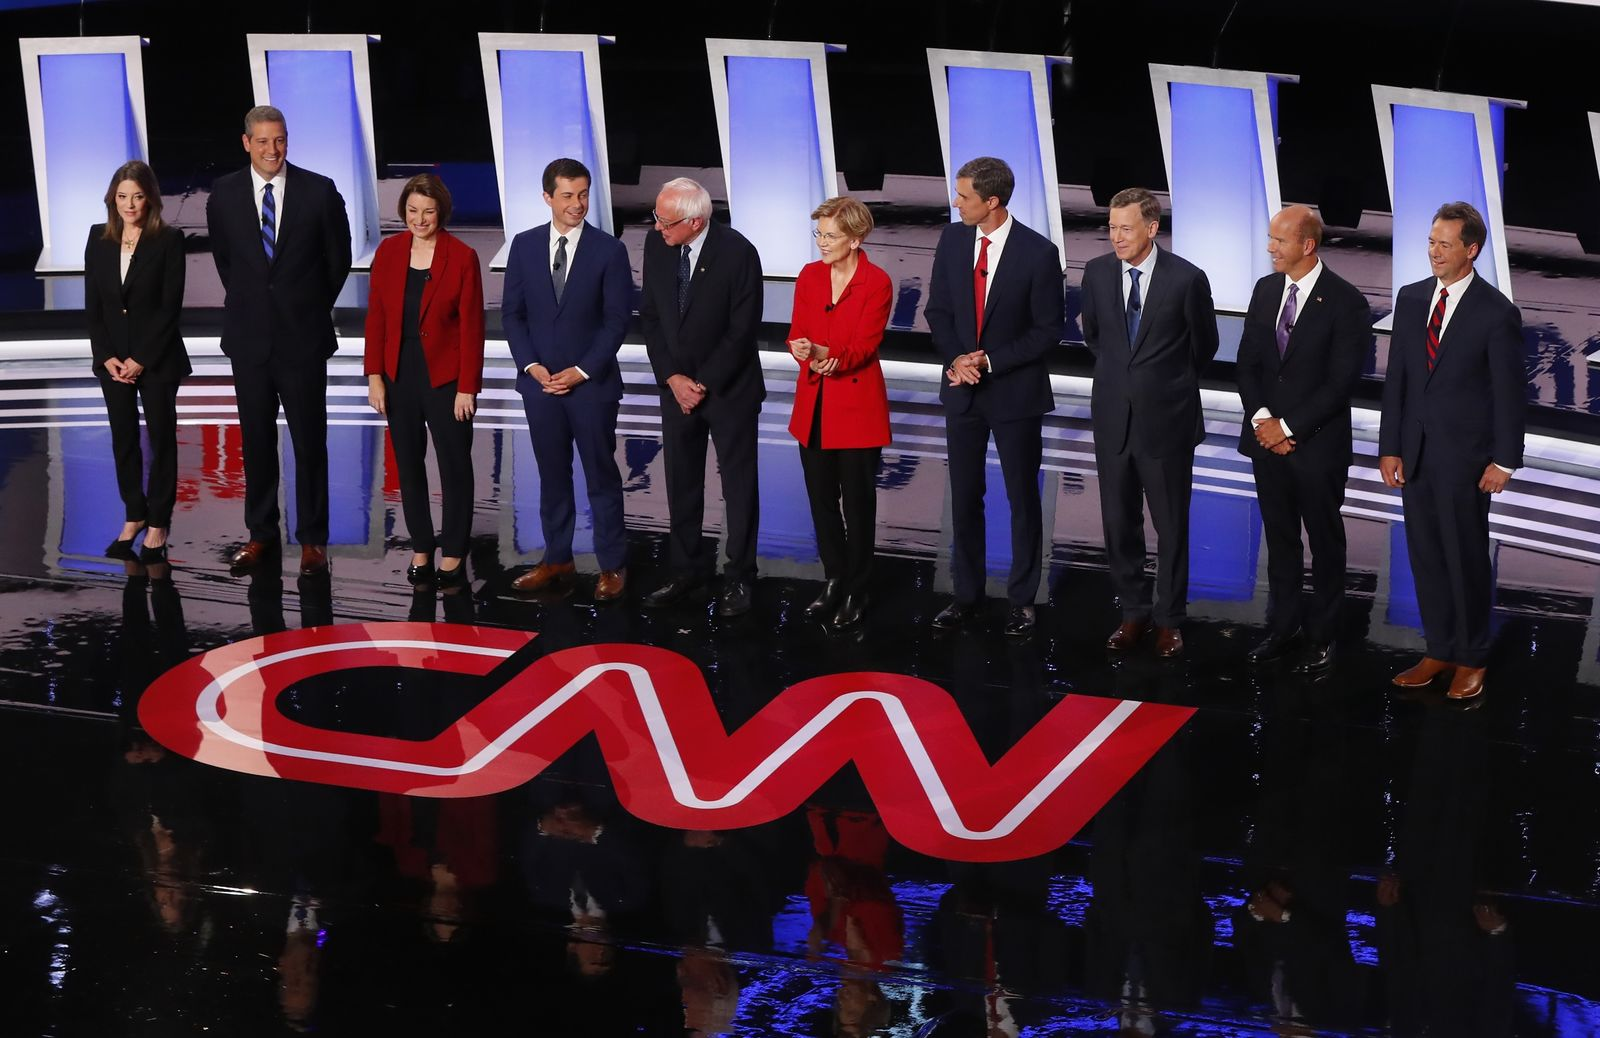 From left, Marianne Williamson, Rep. Tim Ryan, D-Ohio, Sen. Amy Klobuchar, D-Minn., South Bend Mayor Pete Buttigieg, Sen. Bernie Sanders, I-Vt., Sen. Elizabeth Warren, D-Mass., former Texas Rep. Beto O'Rourke, former Colorado Gov. John Hickenlooper, former Maryland Rep. John Delaney and Montana Gov. Steve Bullock take the stage for the first of two Democratic presidential primary debates hosted by CNN Tuesday, July 30, 2019, in the Fox Theatre in Detroit. (AP Photo/Paul Sancya)